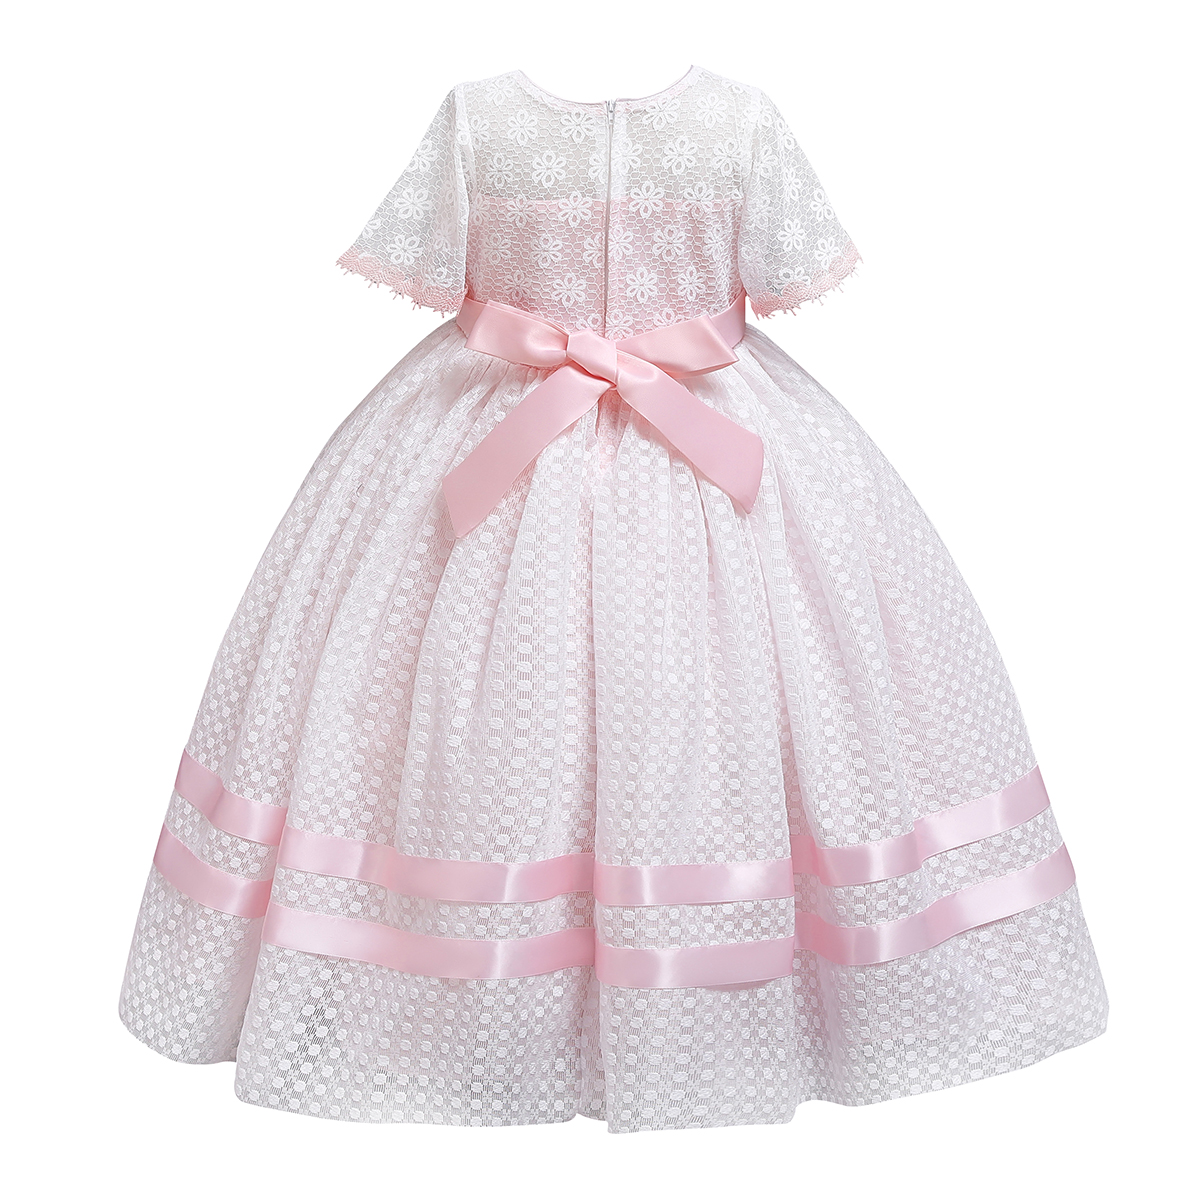 Ball Gown Dress Girls Kids Short Sleeve Pleated Long Dress 3D Flowers Bowknot Princess Party Dress Wedding Birthday Clothes in Dresses from Mother Kids